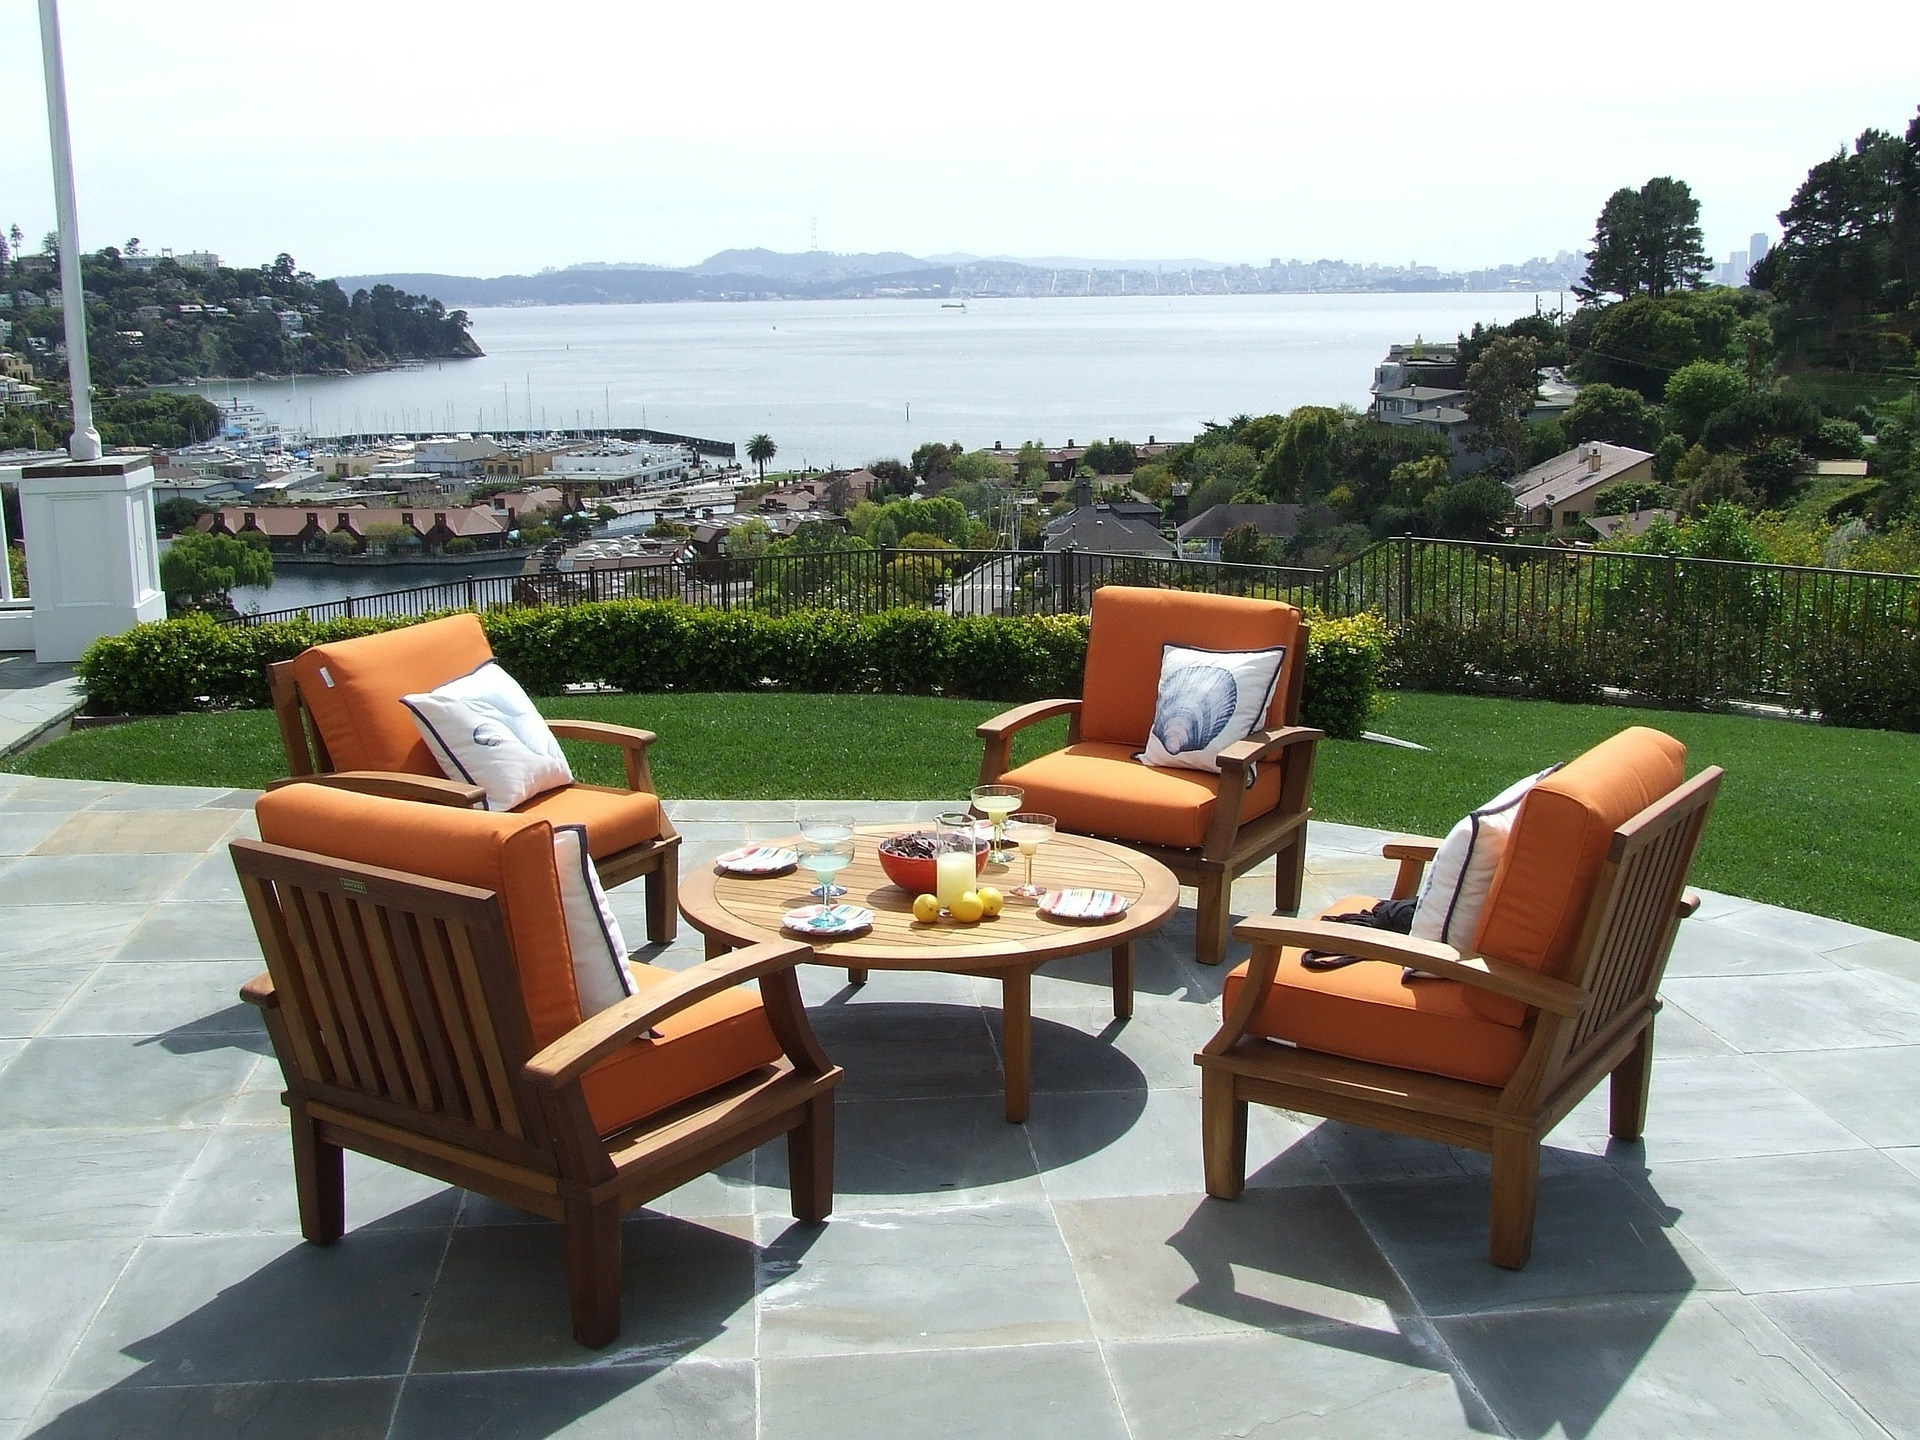 Current Swanky Patio Furniture Things To Consider While Shopping Online Throughout Expensive Patio Umbrellas (View 12 of 20)